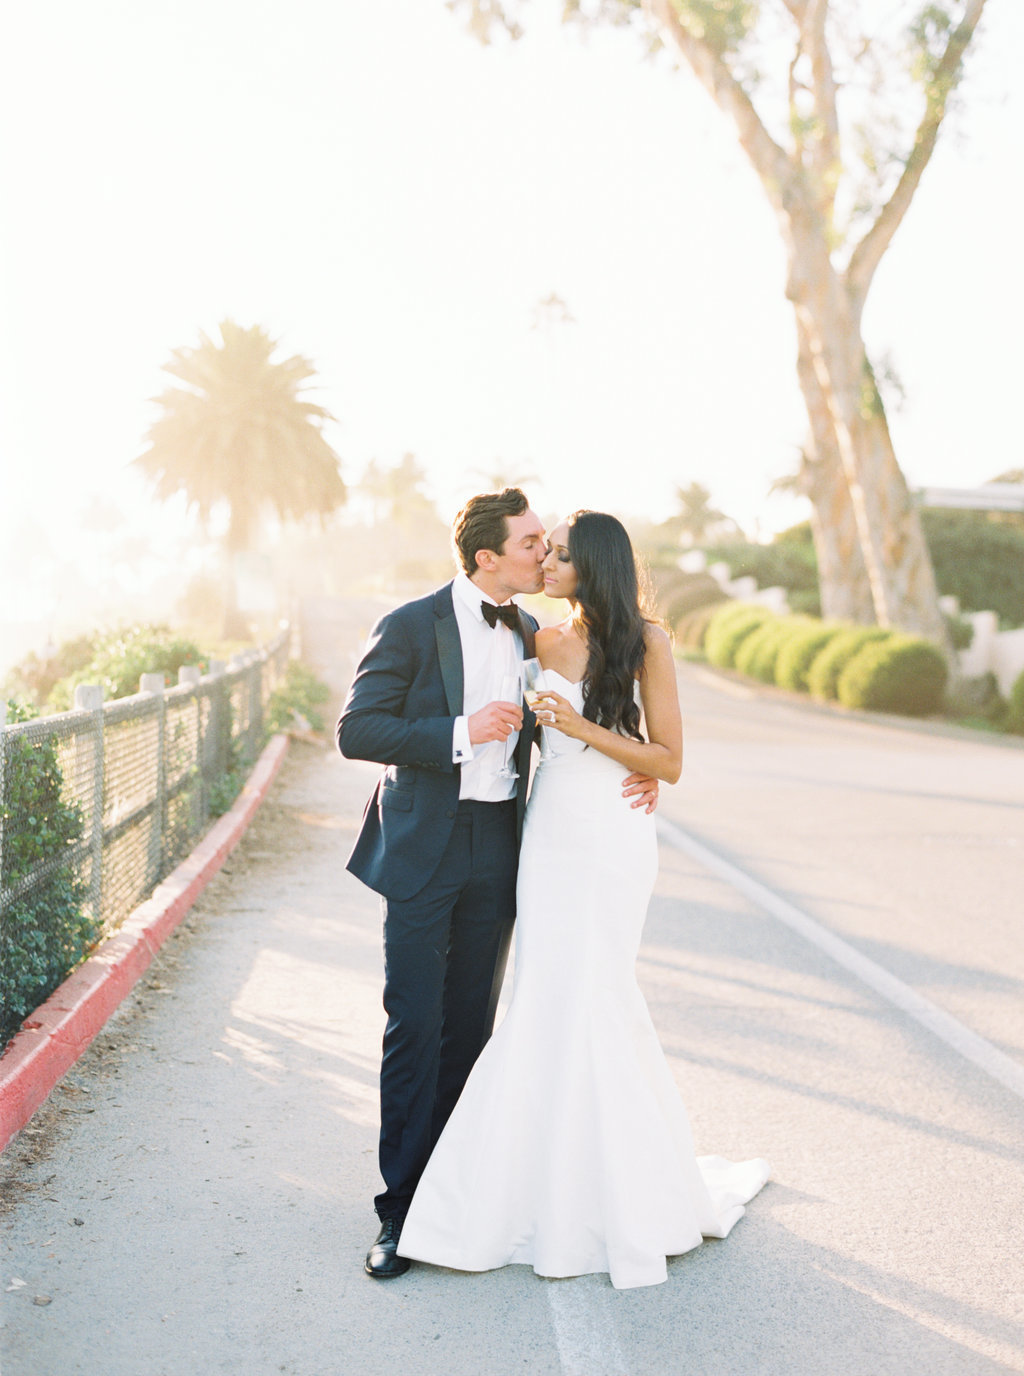 Bride and groom sunset photos on beach in Montecito